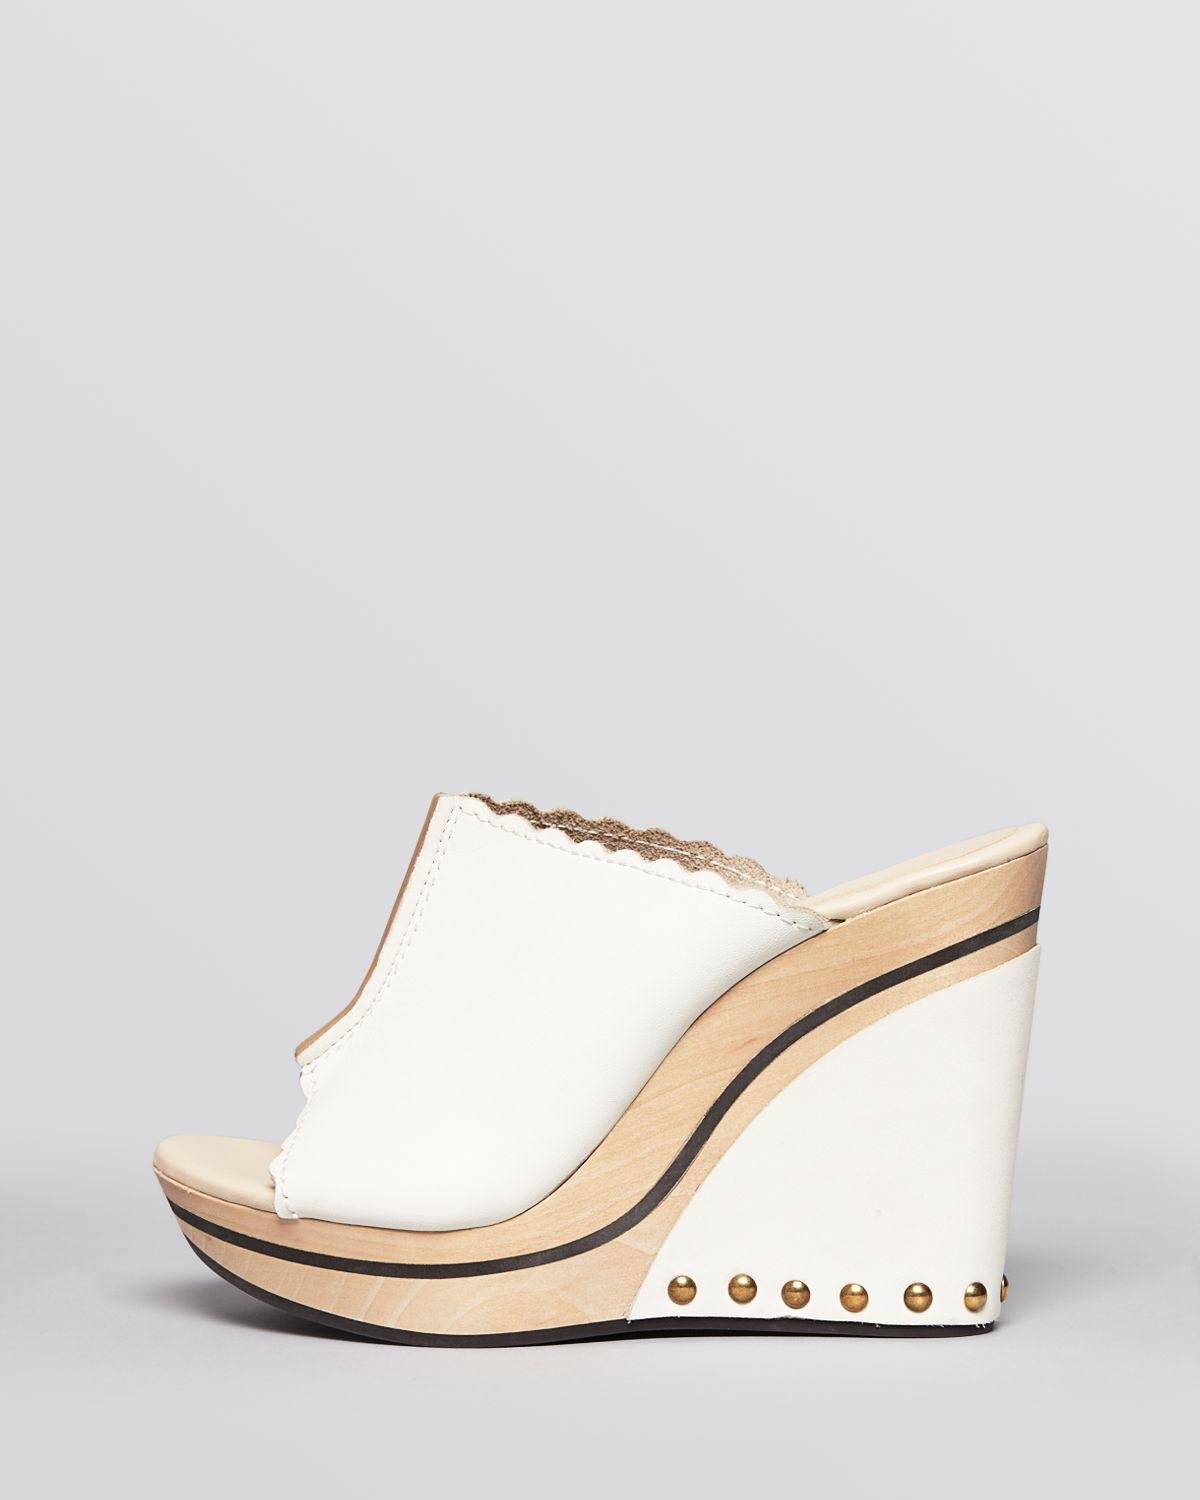 See by Chloé Peep-Toe Slingback Wedges with paypal outlet hot sale lIuTsDj